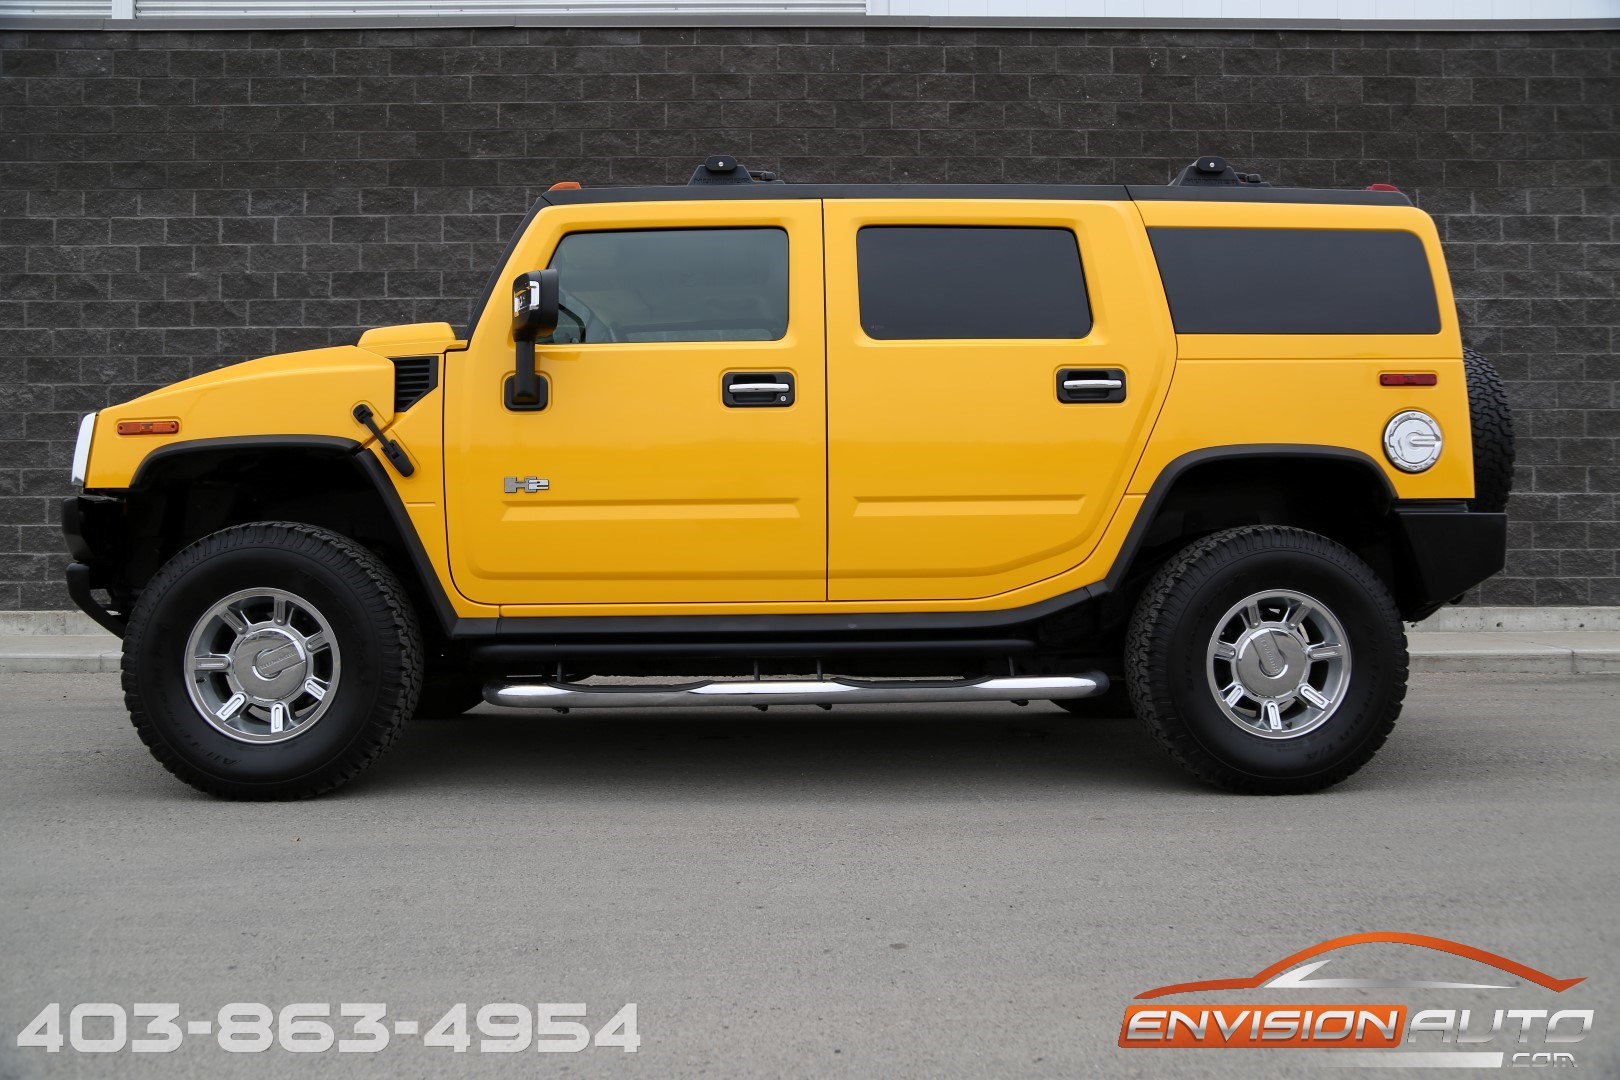 2005 H2 Hummer Suv Luxury Pkg Low Mileage Envision Auto